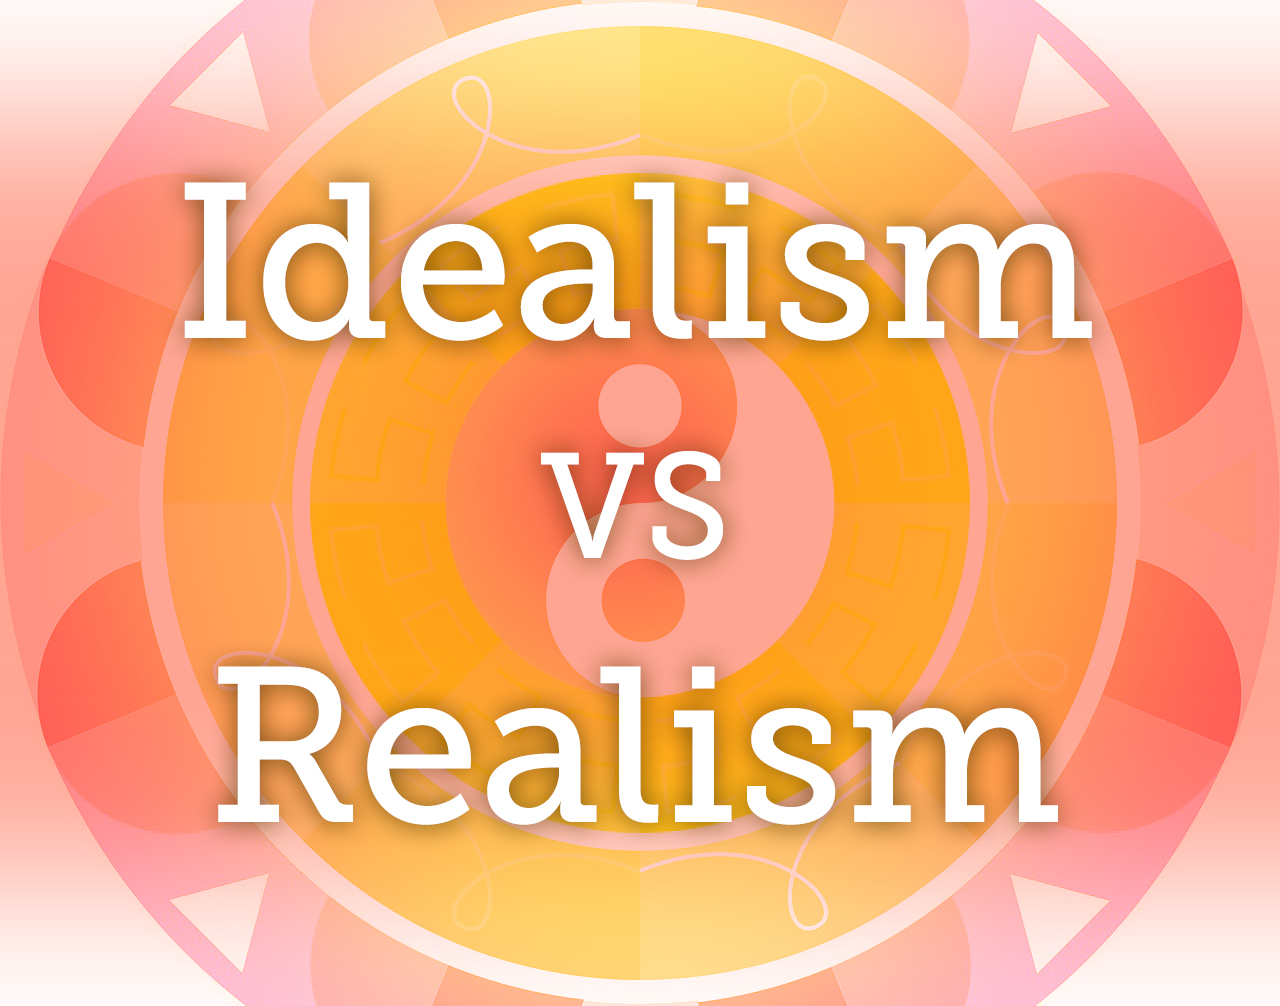 tempering idealism against realism